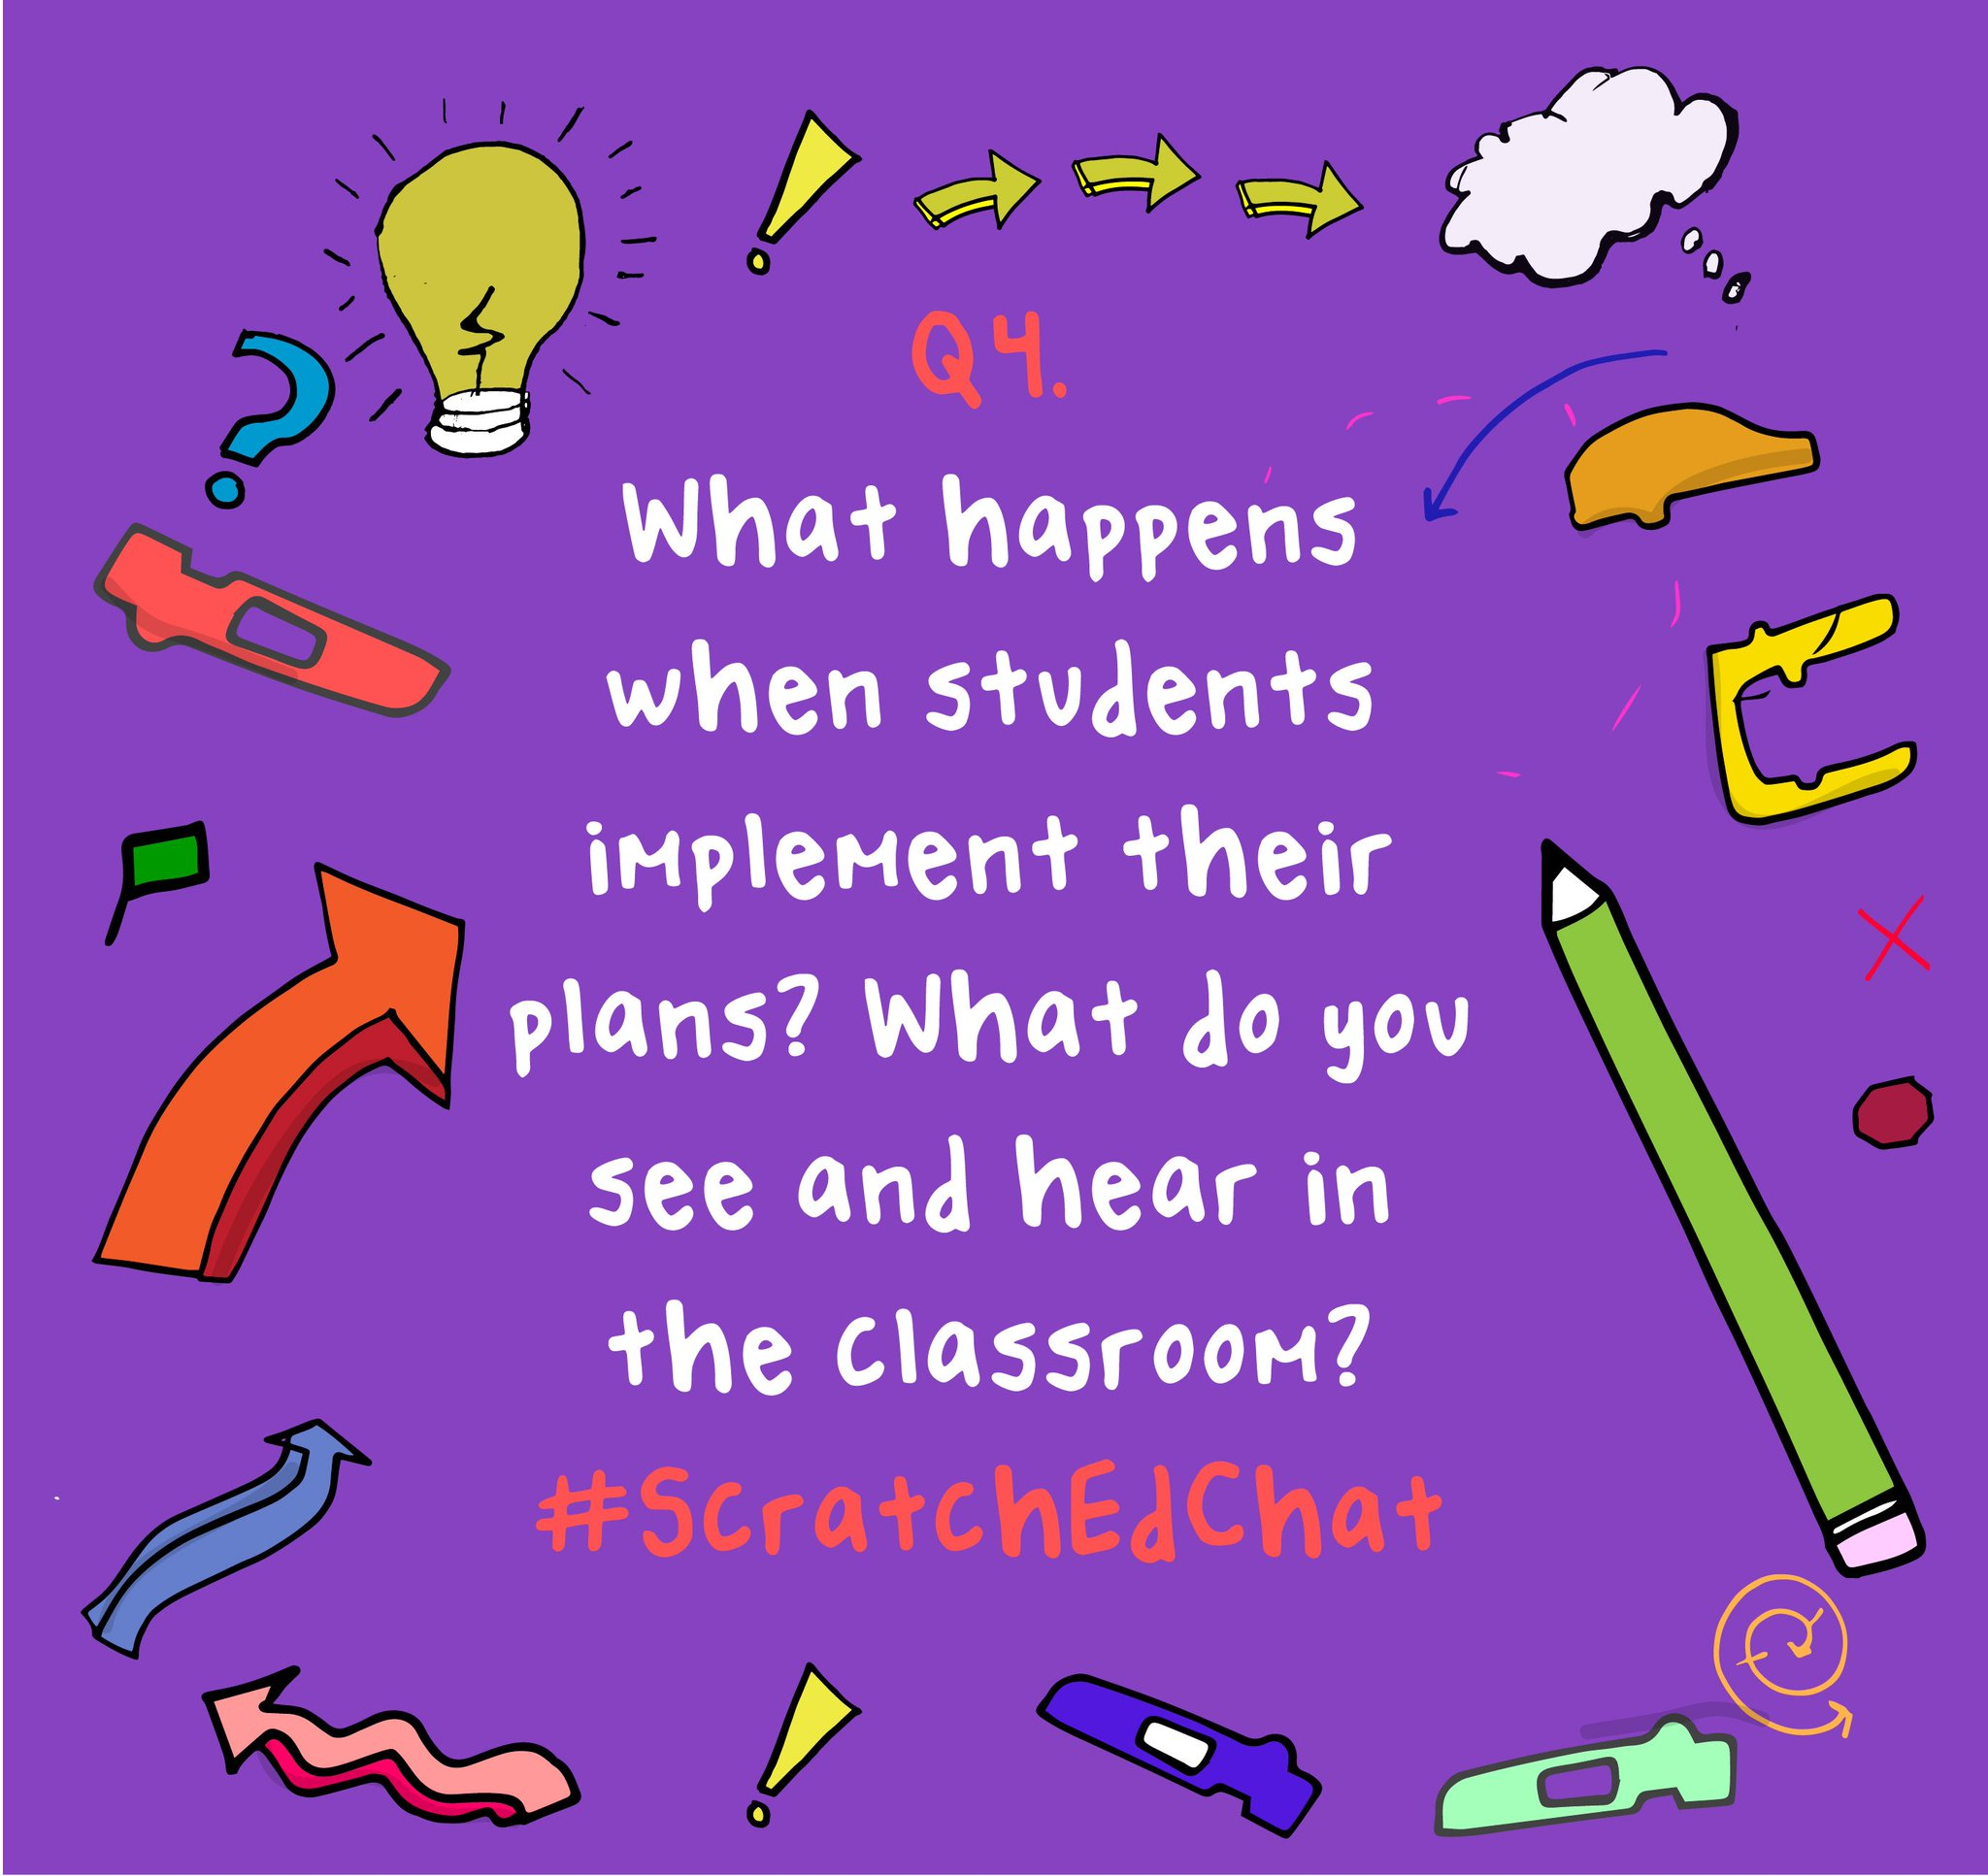 Q4. What happens when students implement their plans? What do you see and hear in the classroom? #ScratchEdChat https://t.co/LnuzwUMT8M